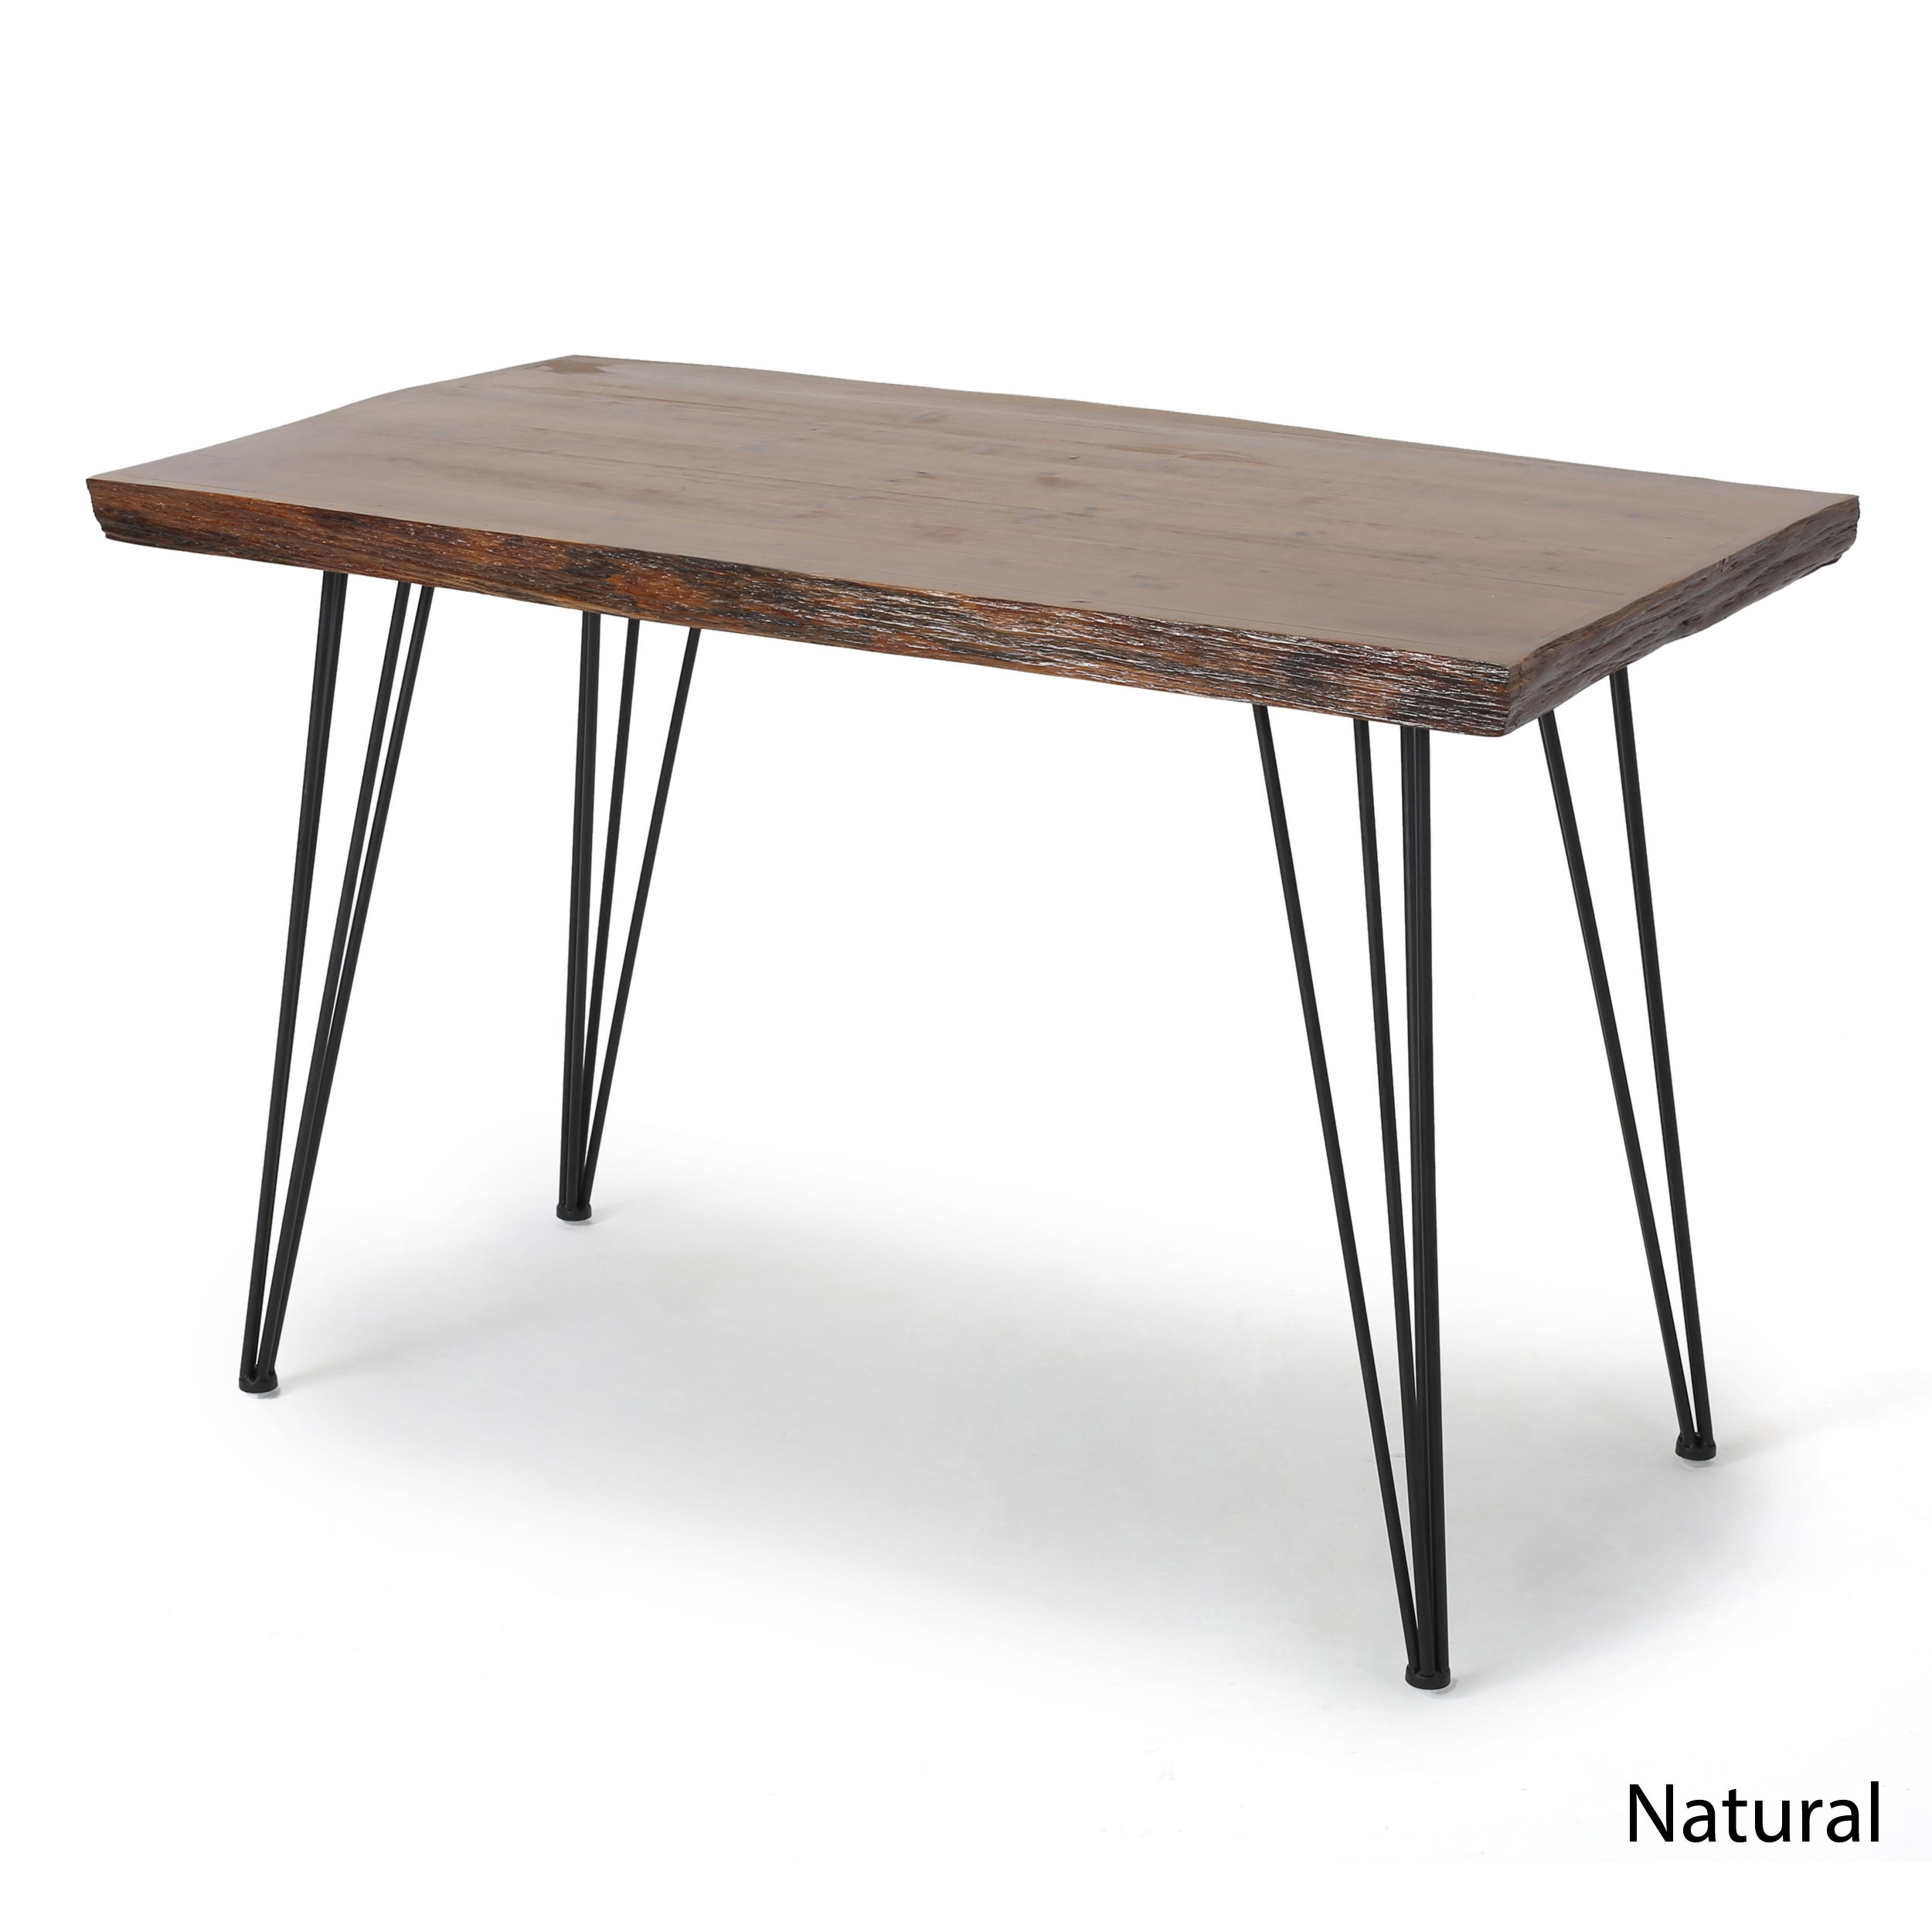 table edge things all tables castelle driftwood jasmine rectangular and top barbecue finish live altra with dining